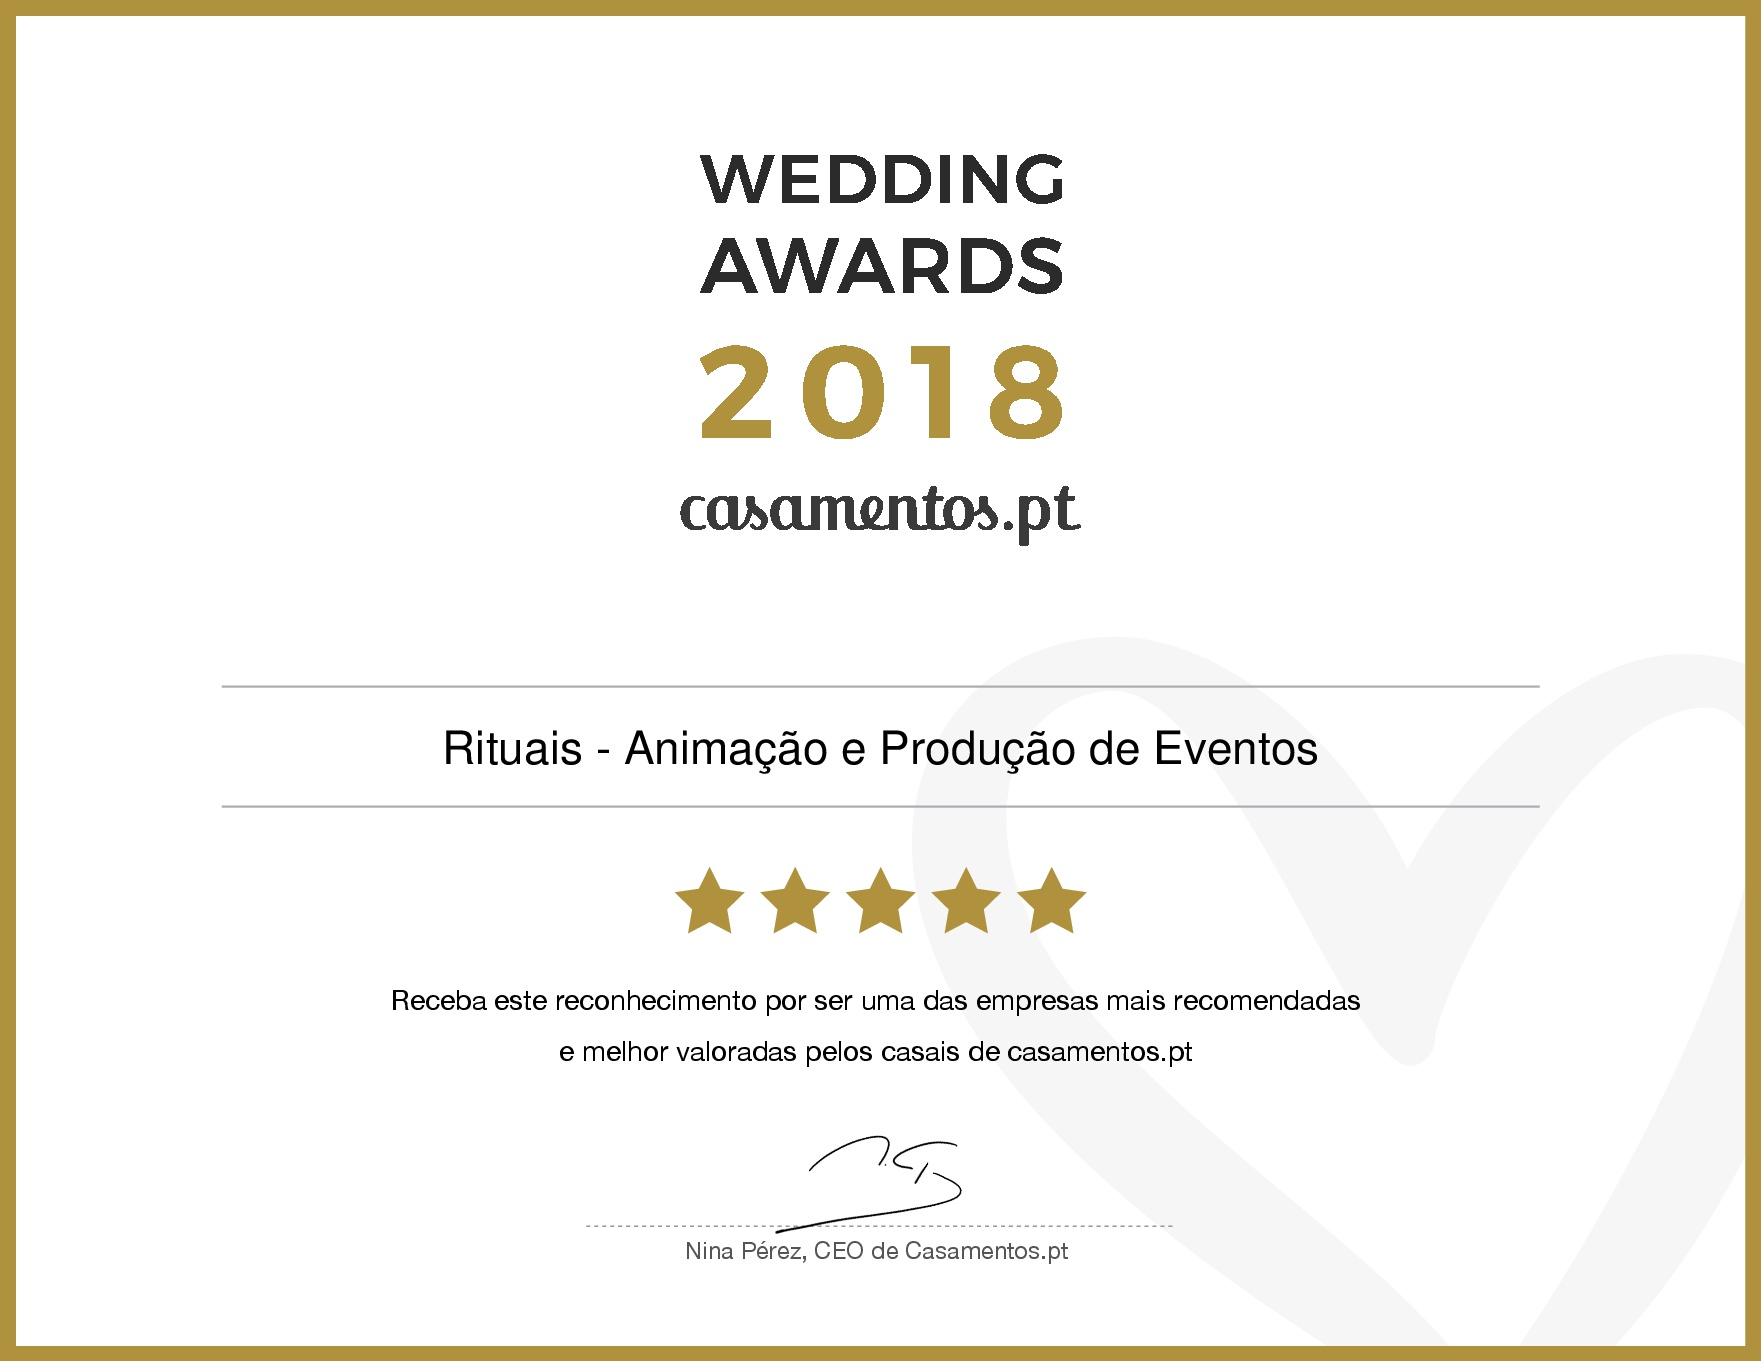 Wedding_Awards_2018-001.jpg